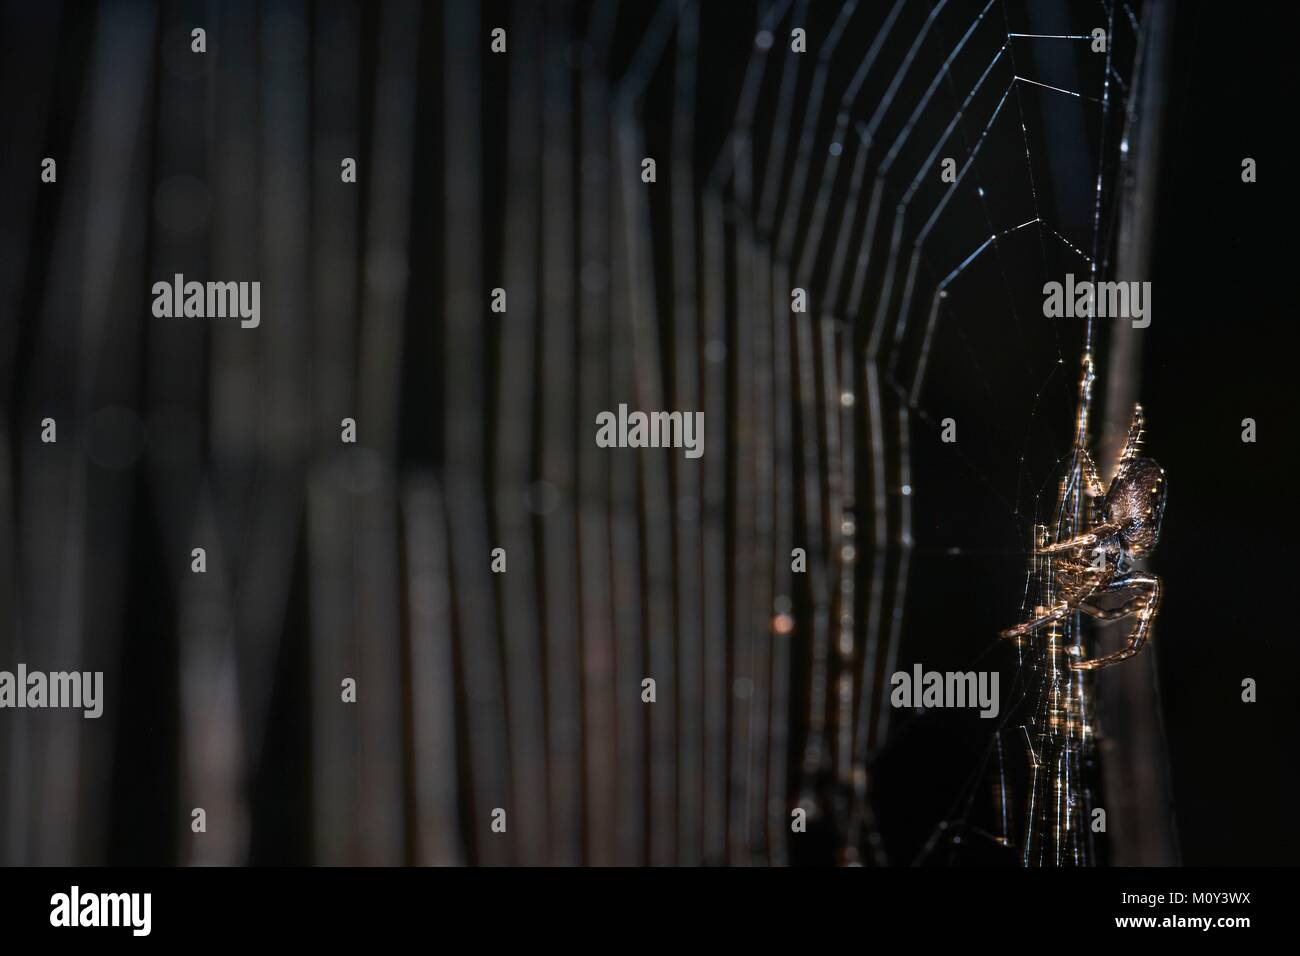 France, Morbihan, Vannes, Araneae, Araneidae, Walnut orb weaver (Nuctenea umbratica) on its web - Stock Image